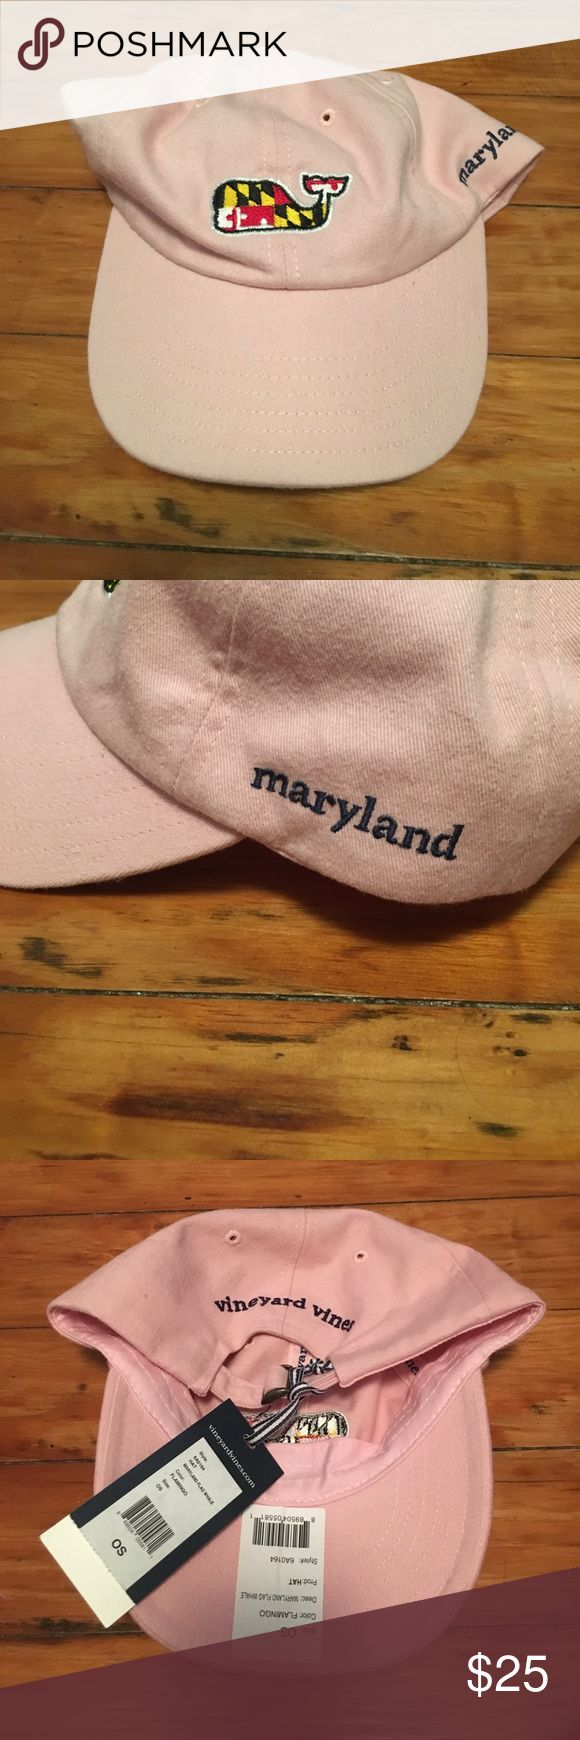 Pink Maryland Vineyard Vines hat NWT Cute pink baseball cap, Maryland print in Vineyard Vines whale, Maryland written on side Vineyard Vines Accessories Hats